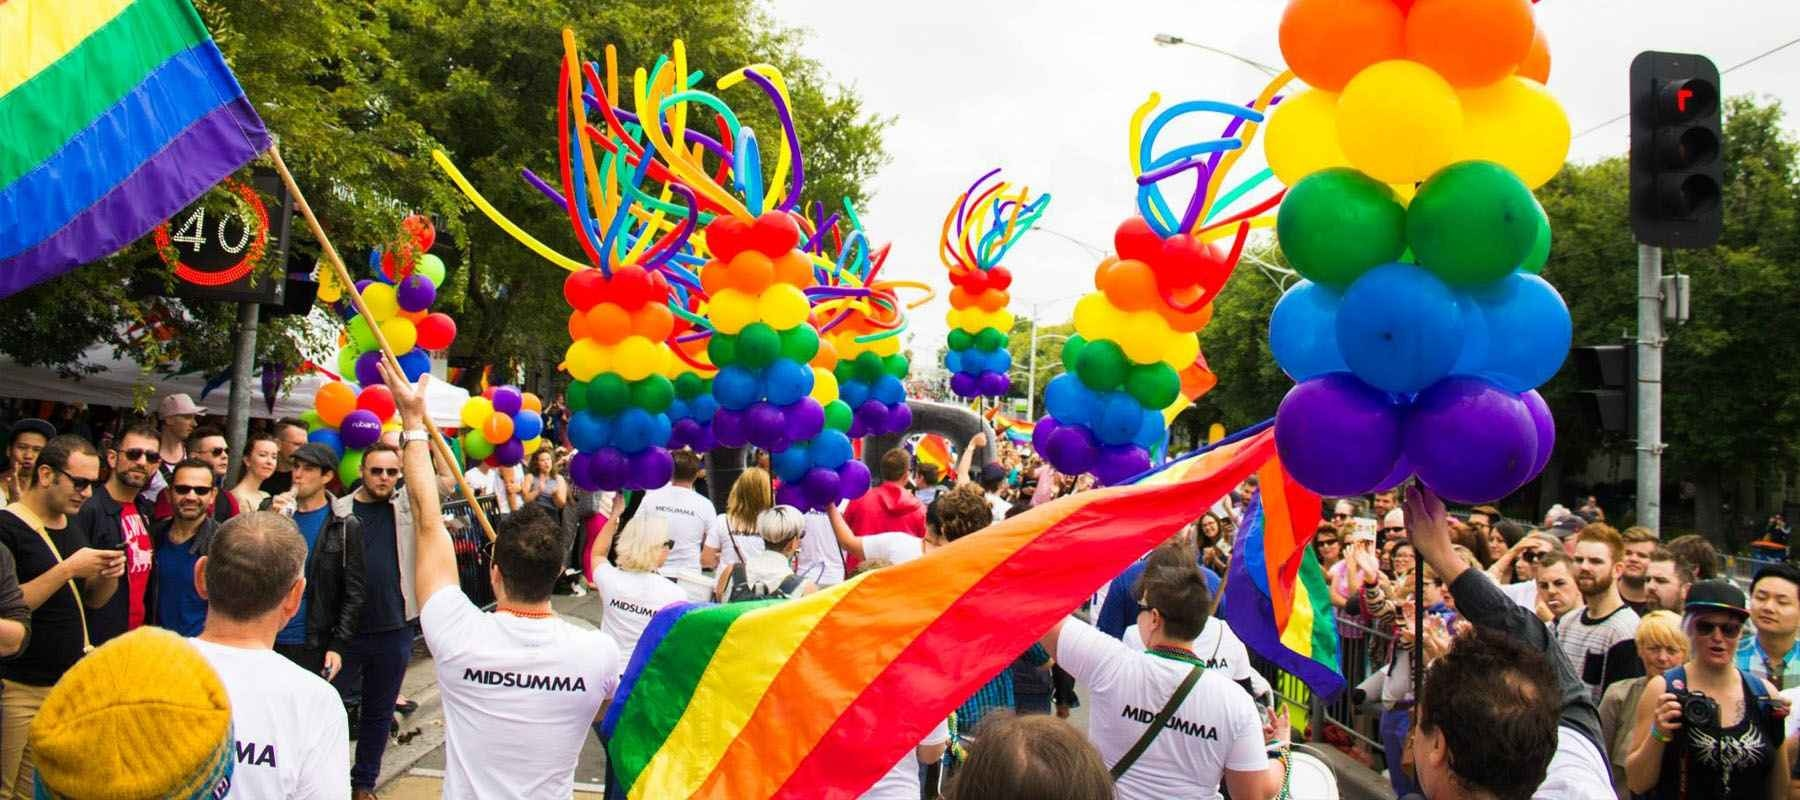 religious schools and hospitals are exempted from lgbt anti discrimination laws in australia